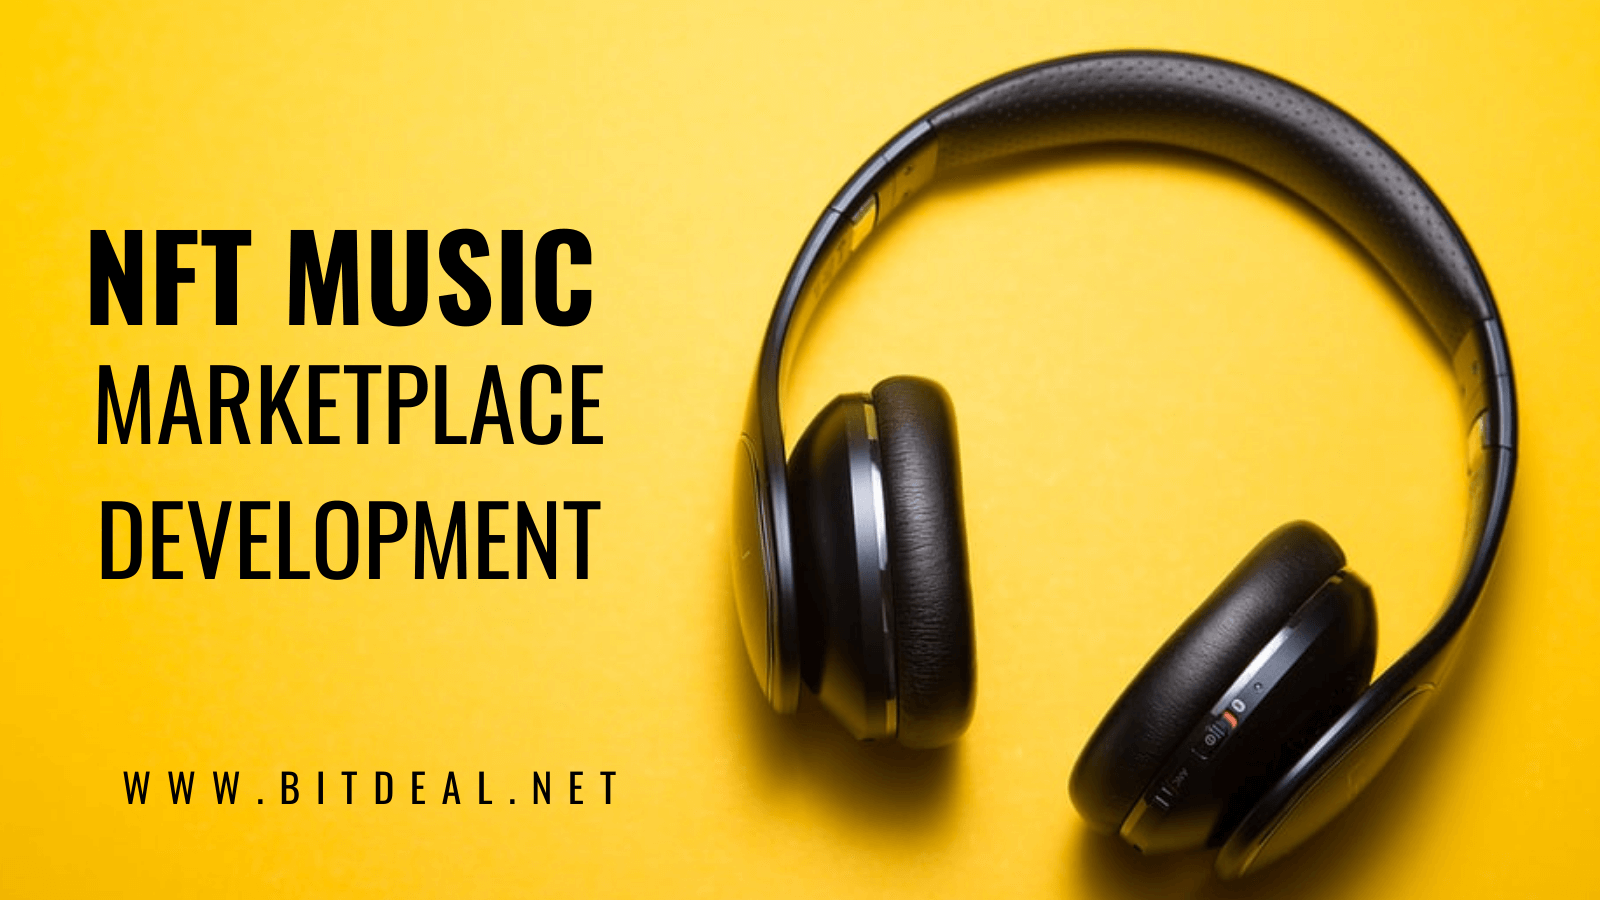 NFT Music Marketplace Development - Create Your Own NFT Marketplace For Music